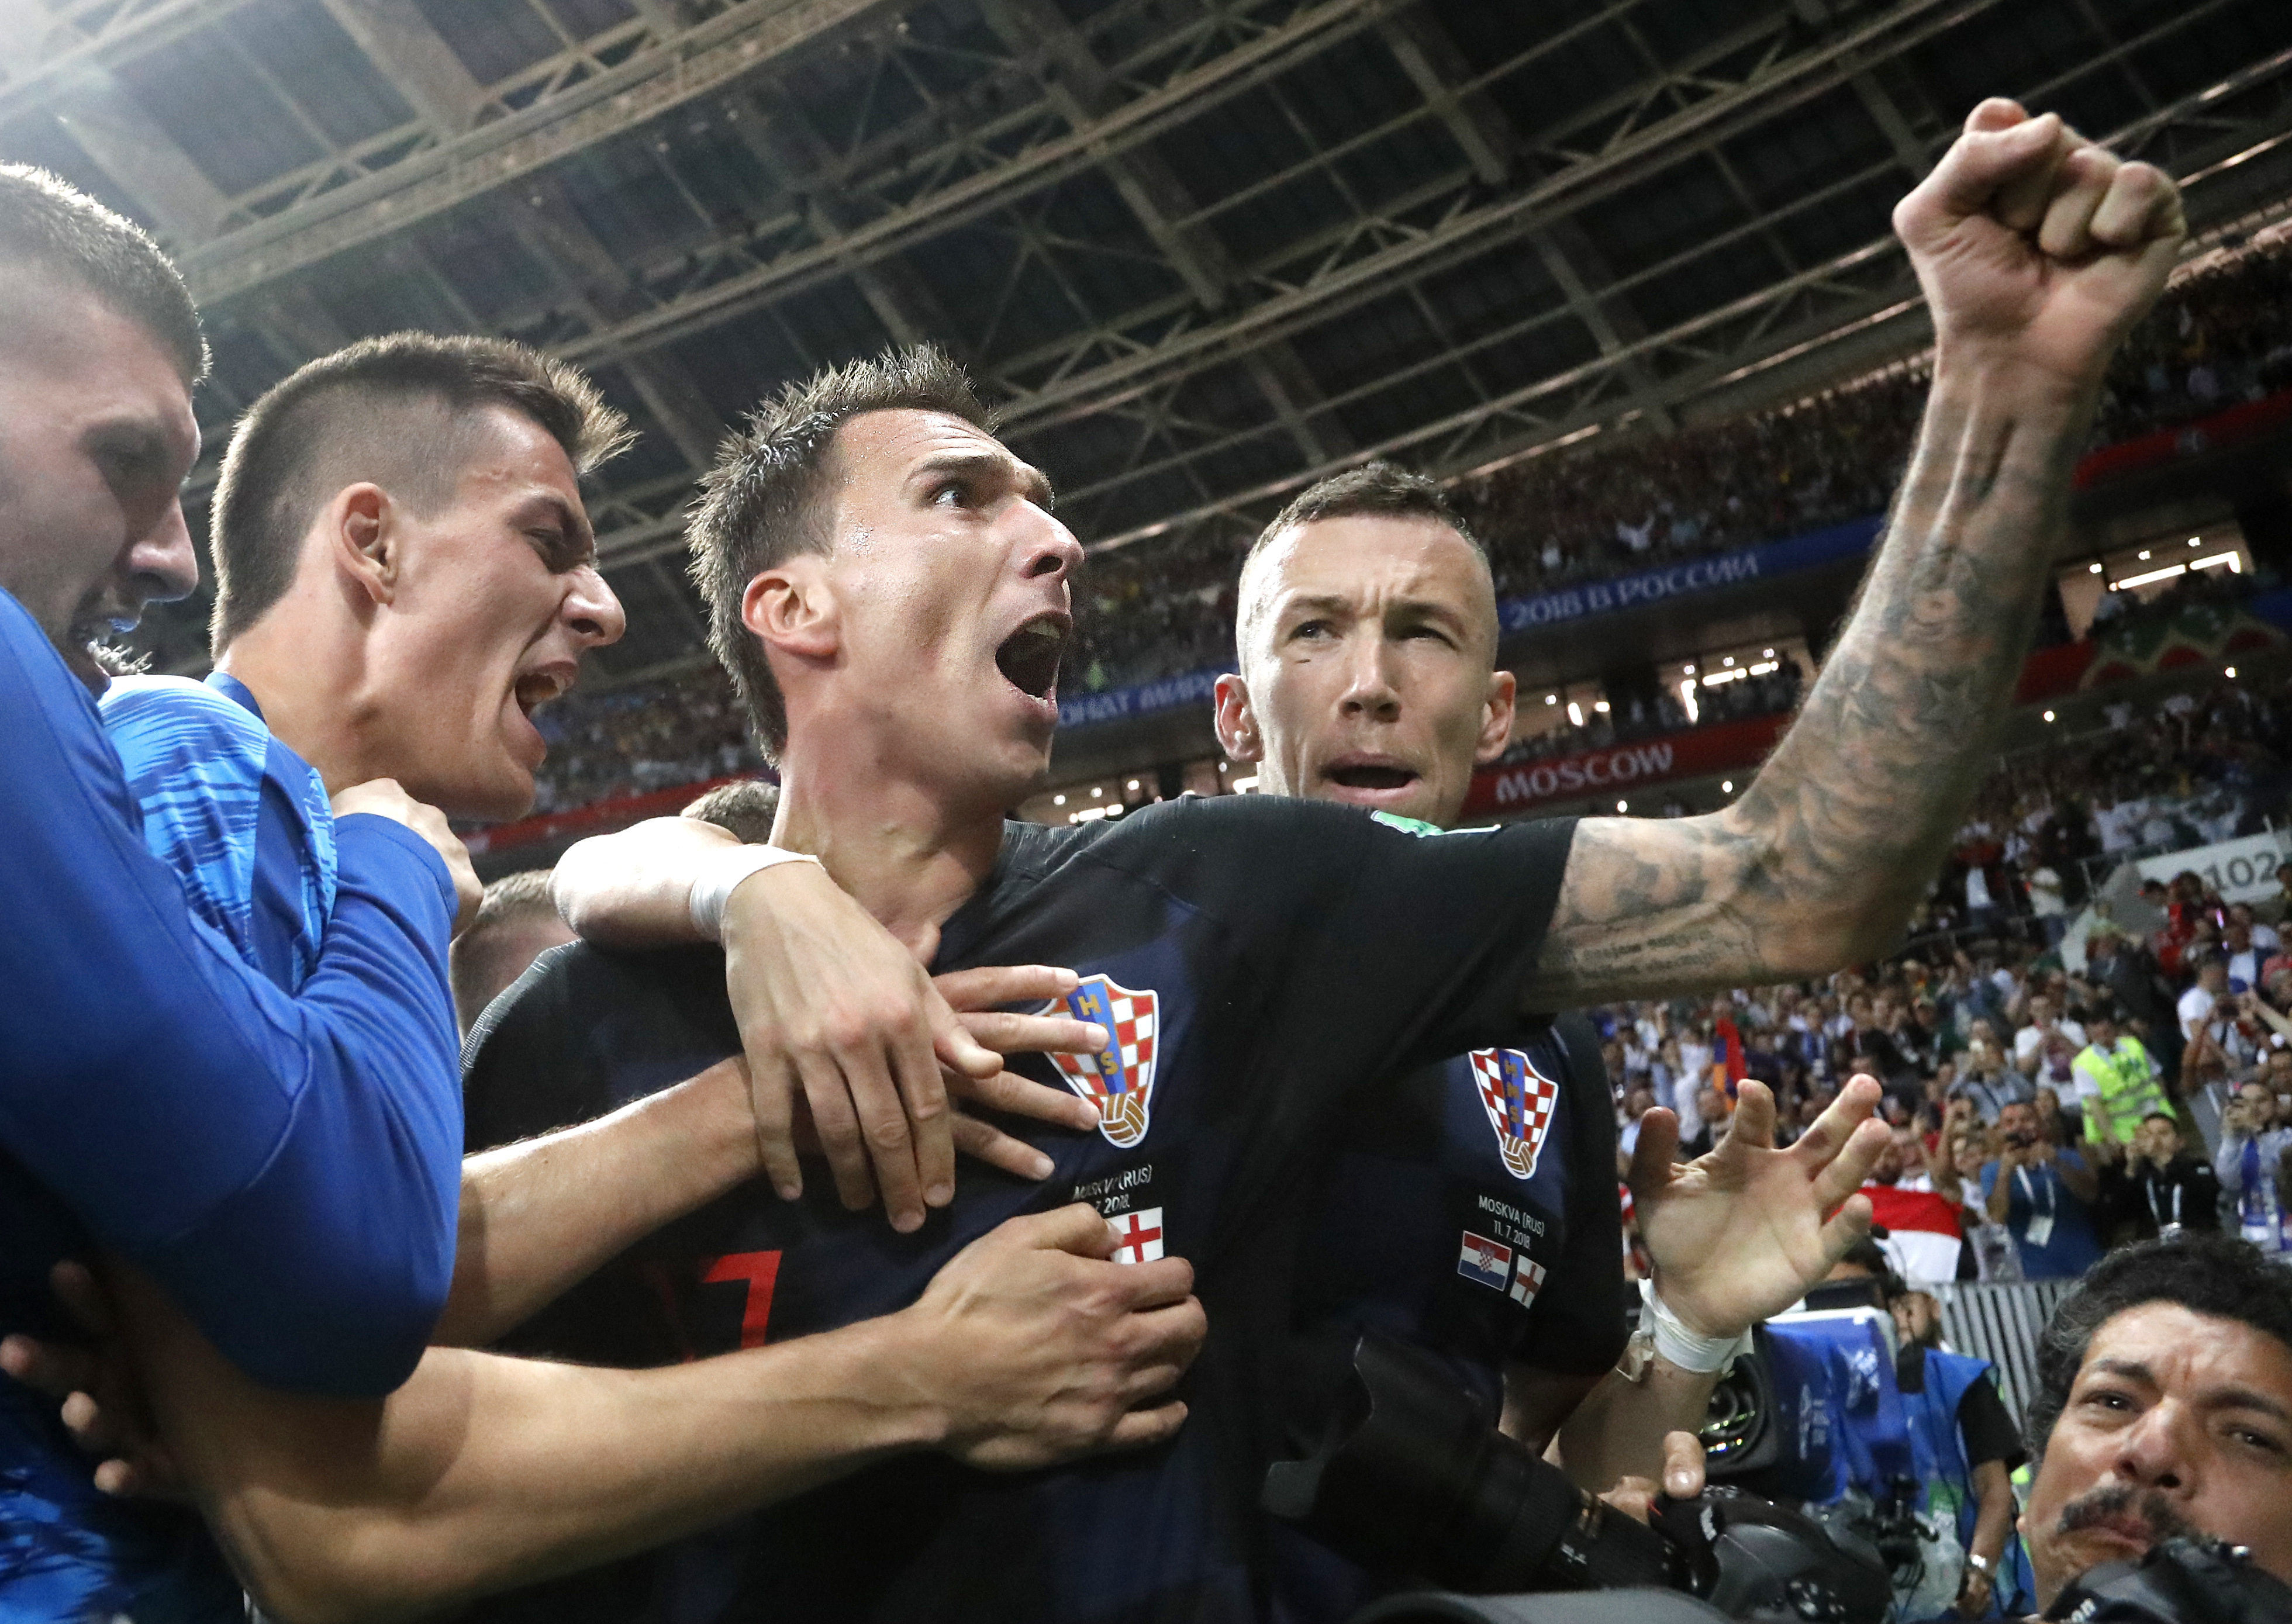 Croatia´s Mario Mandzukic, center, celebrates after scoring his side´s second goal during the semifinal match between Croatia and England at the 2018 soccer World Cup in the Luzhniki Stadium in Moscow, Russia, Wednesday, July 11, 2018.